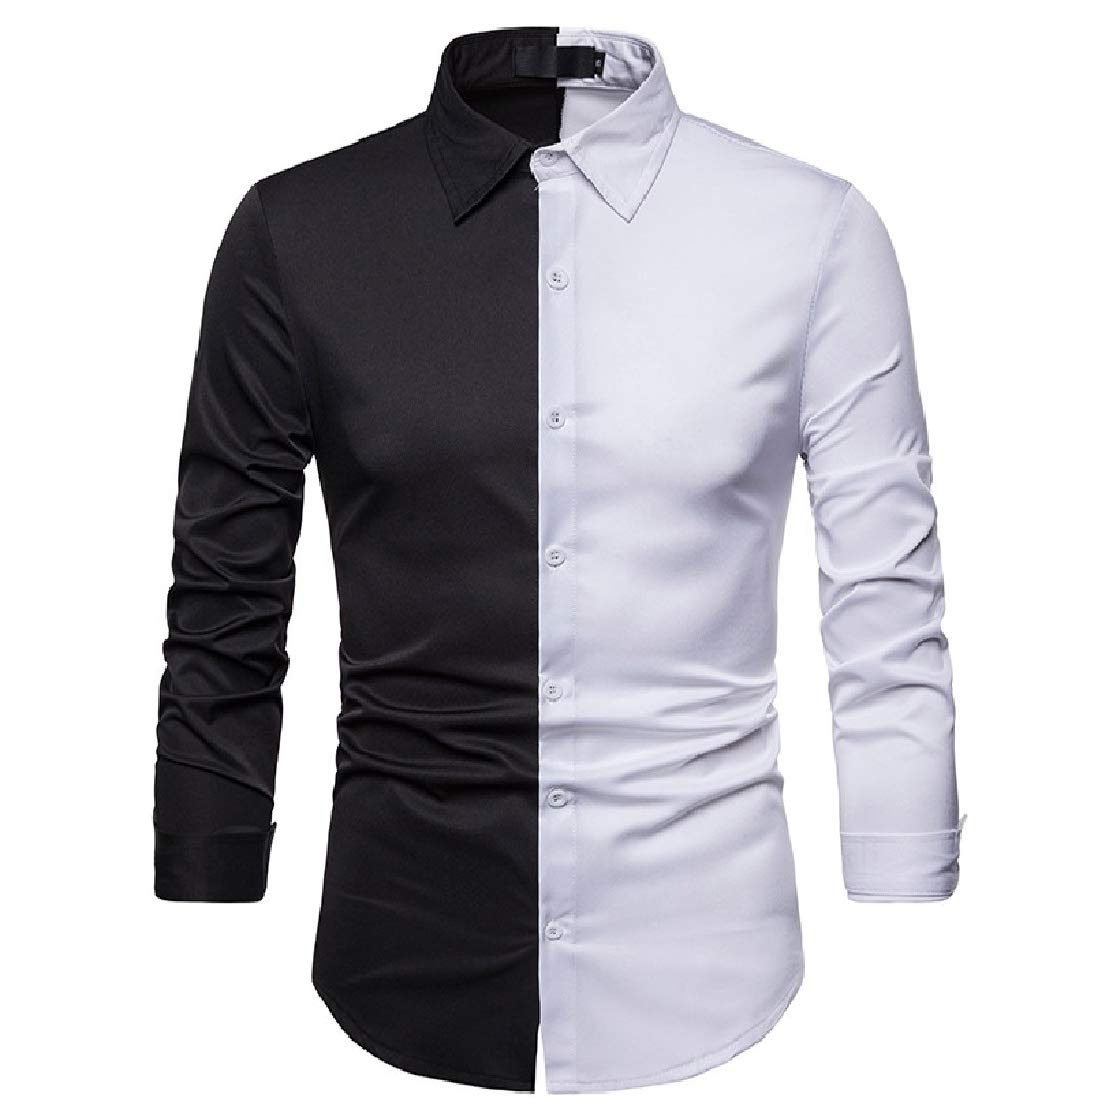 YUNY Mens Plus Size Stitching Hit Color Autumn Casual Long-Sleeve Longshirt White S